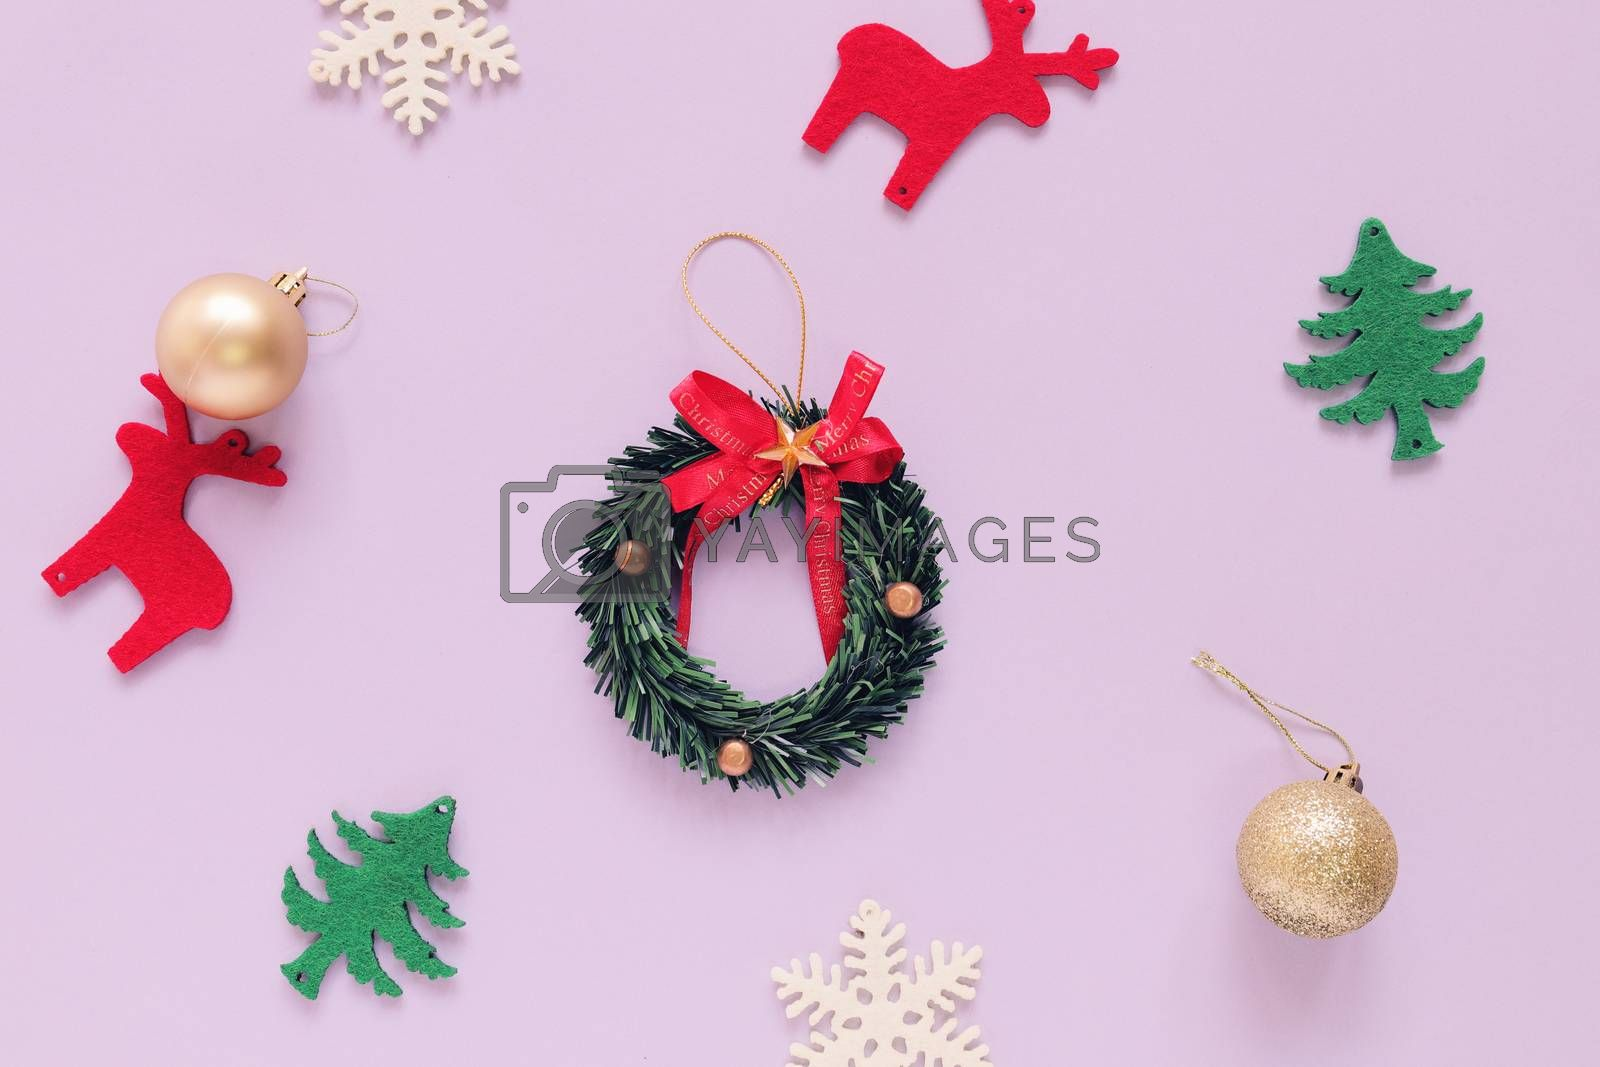 Christmas concept : Flat lay of Christmas ornaments on purple background with minimal style